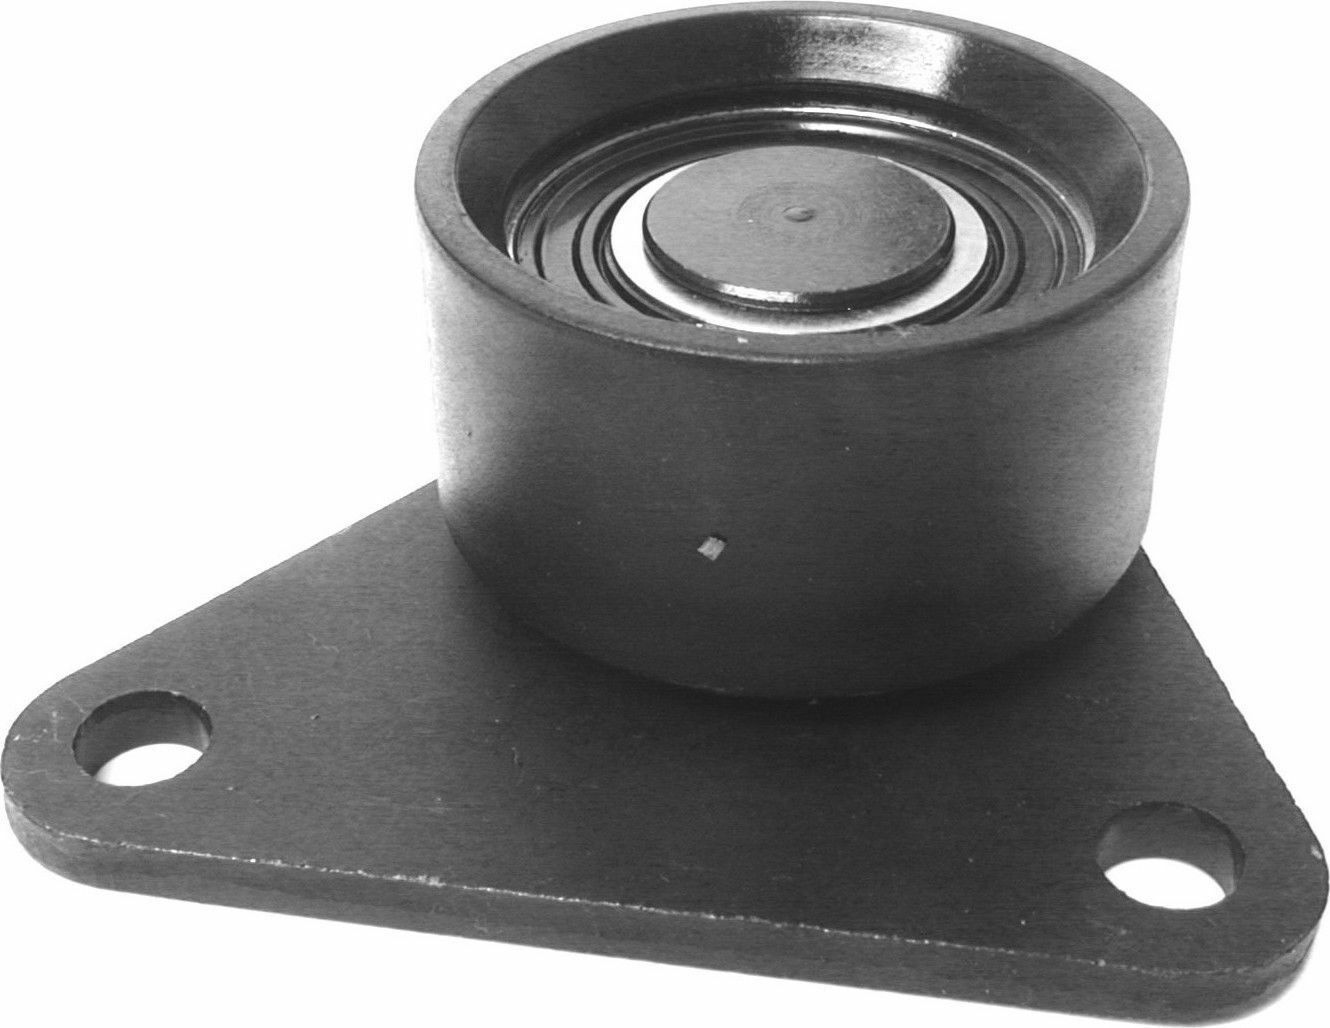 Engine Timing Idler Pulley URO Parts 8630590 fits 98-07 Volvo V70 2.4L-L5